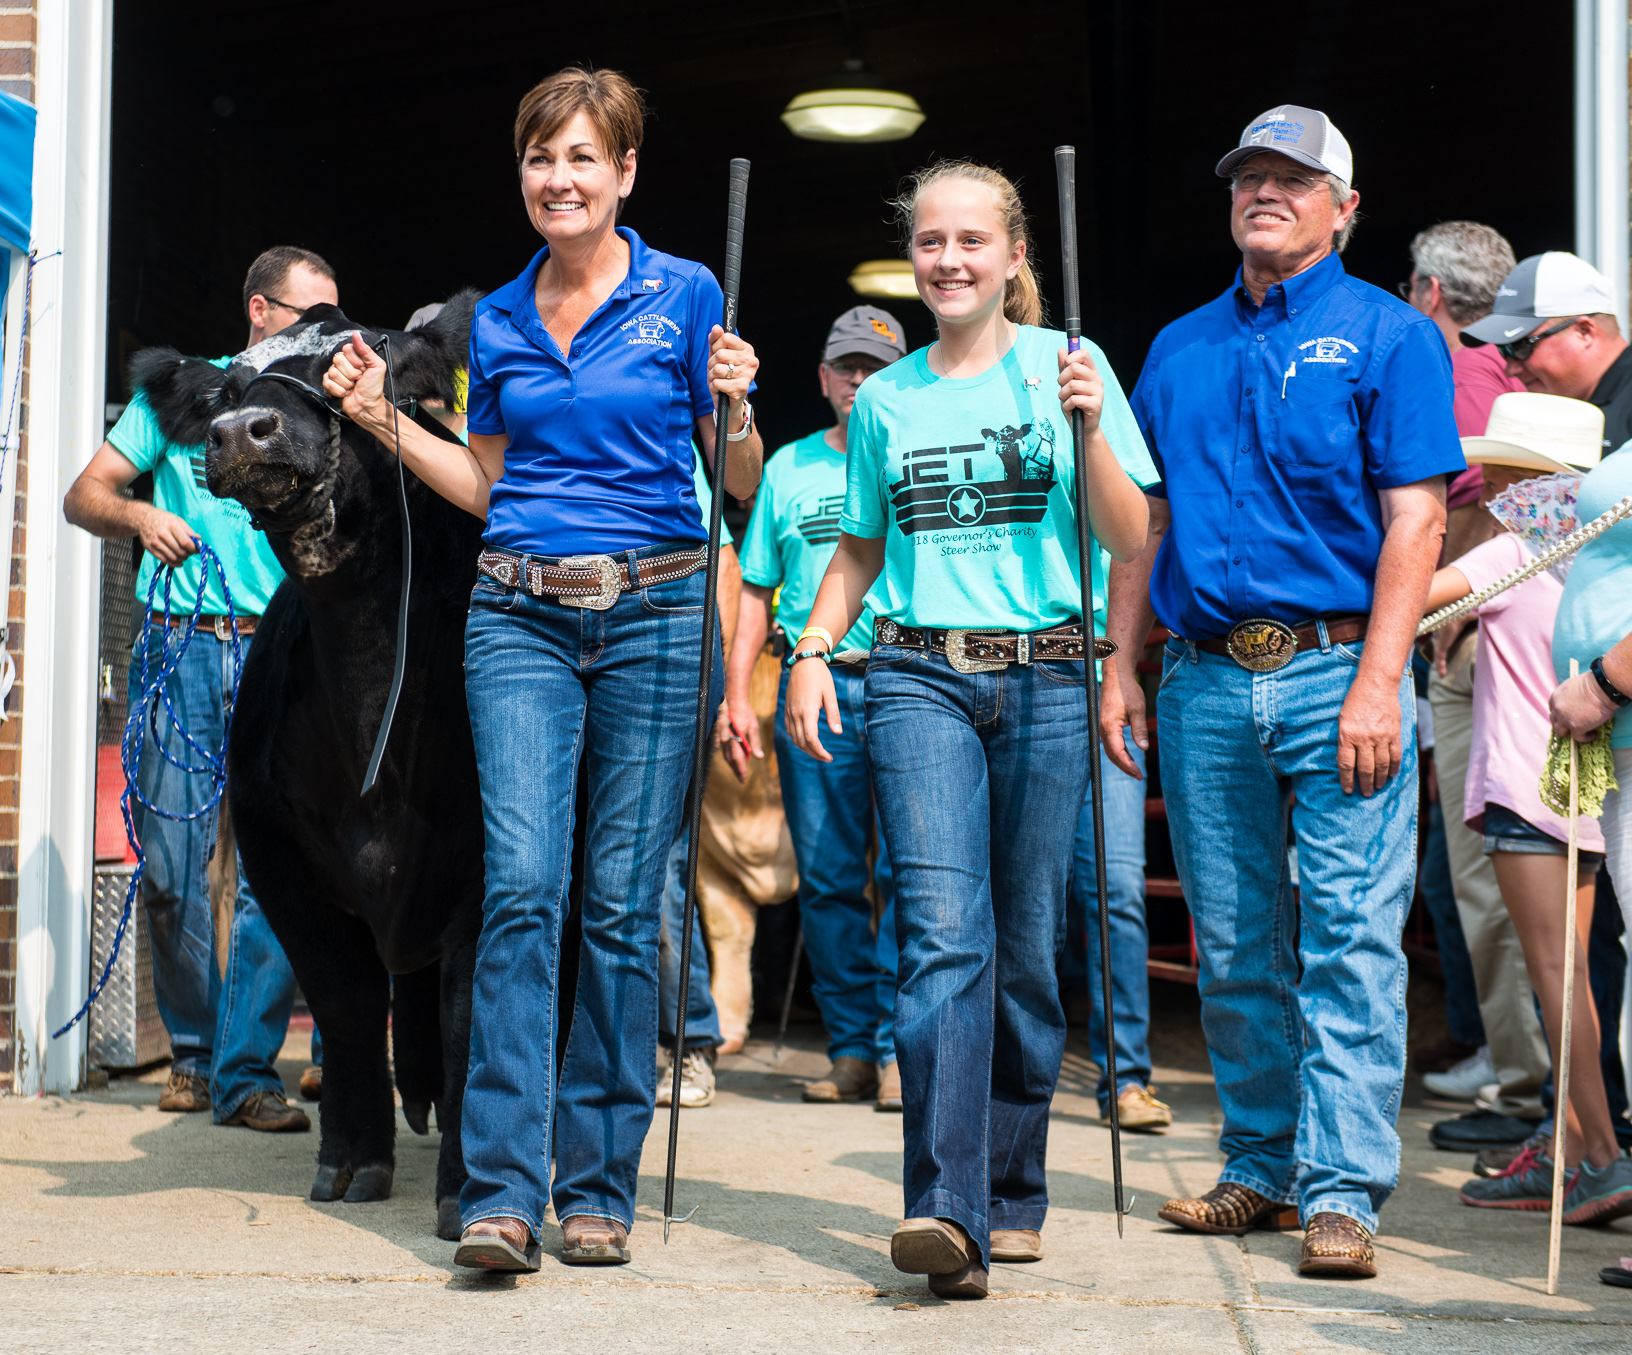 Governor Kim Reynolds and Tyler Pudenz lead Jet out of the livestock barn during the parade to the Governor's Steer Show. Pudenz said she usually doesn't get nervous until she enters the ring before a show. Photo credit: Joseph L. Murphy, Iowa Soybean Association